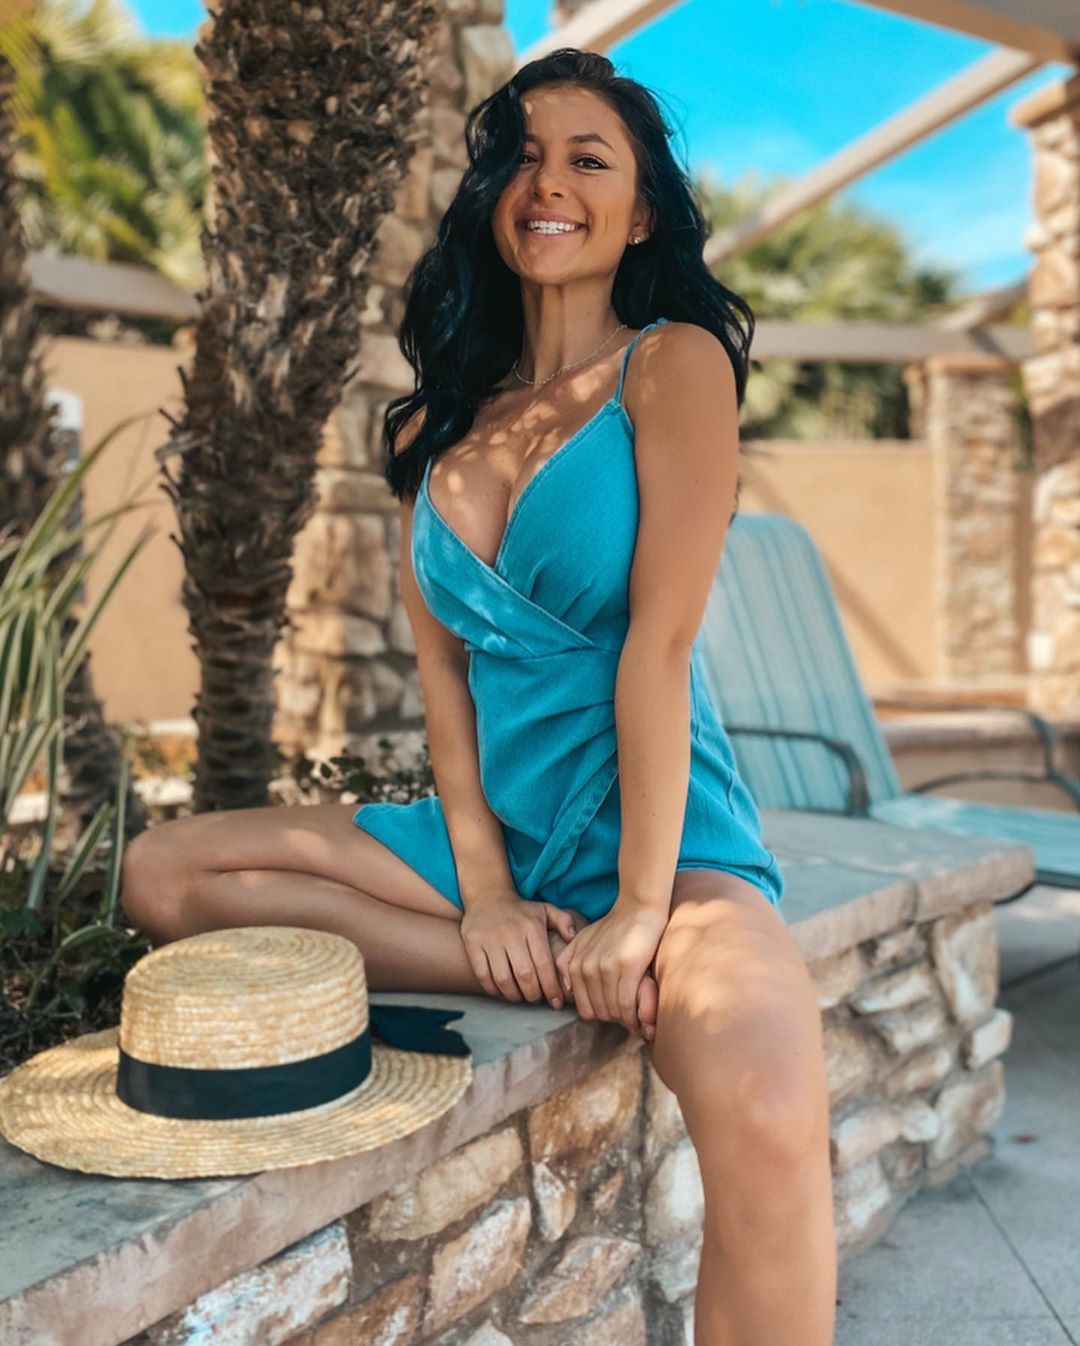 turquoise outfits for women with dress, girls photoshoot, hot legs